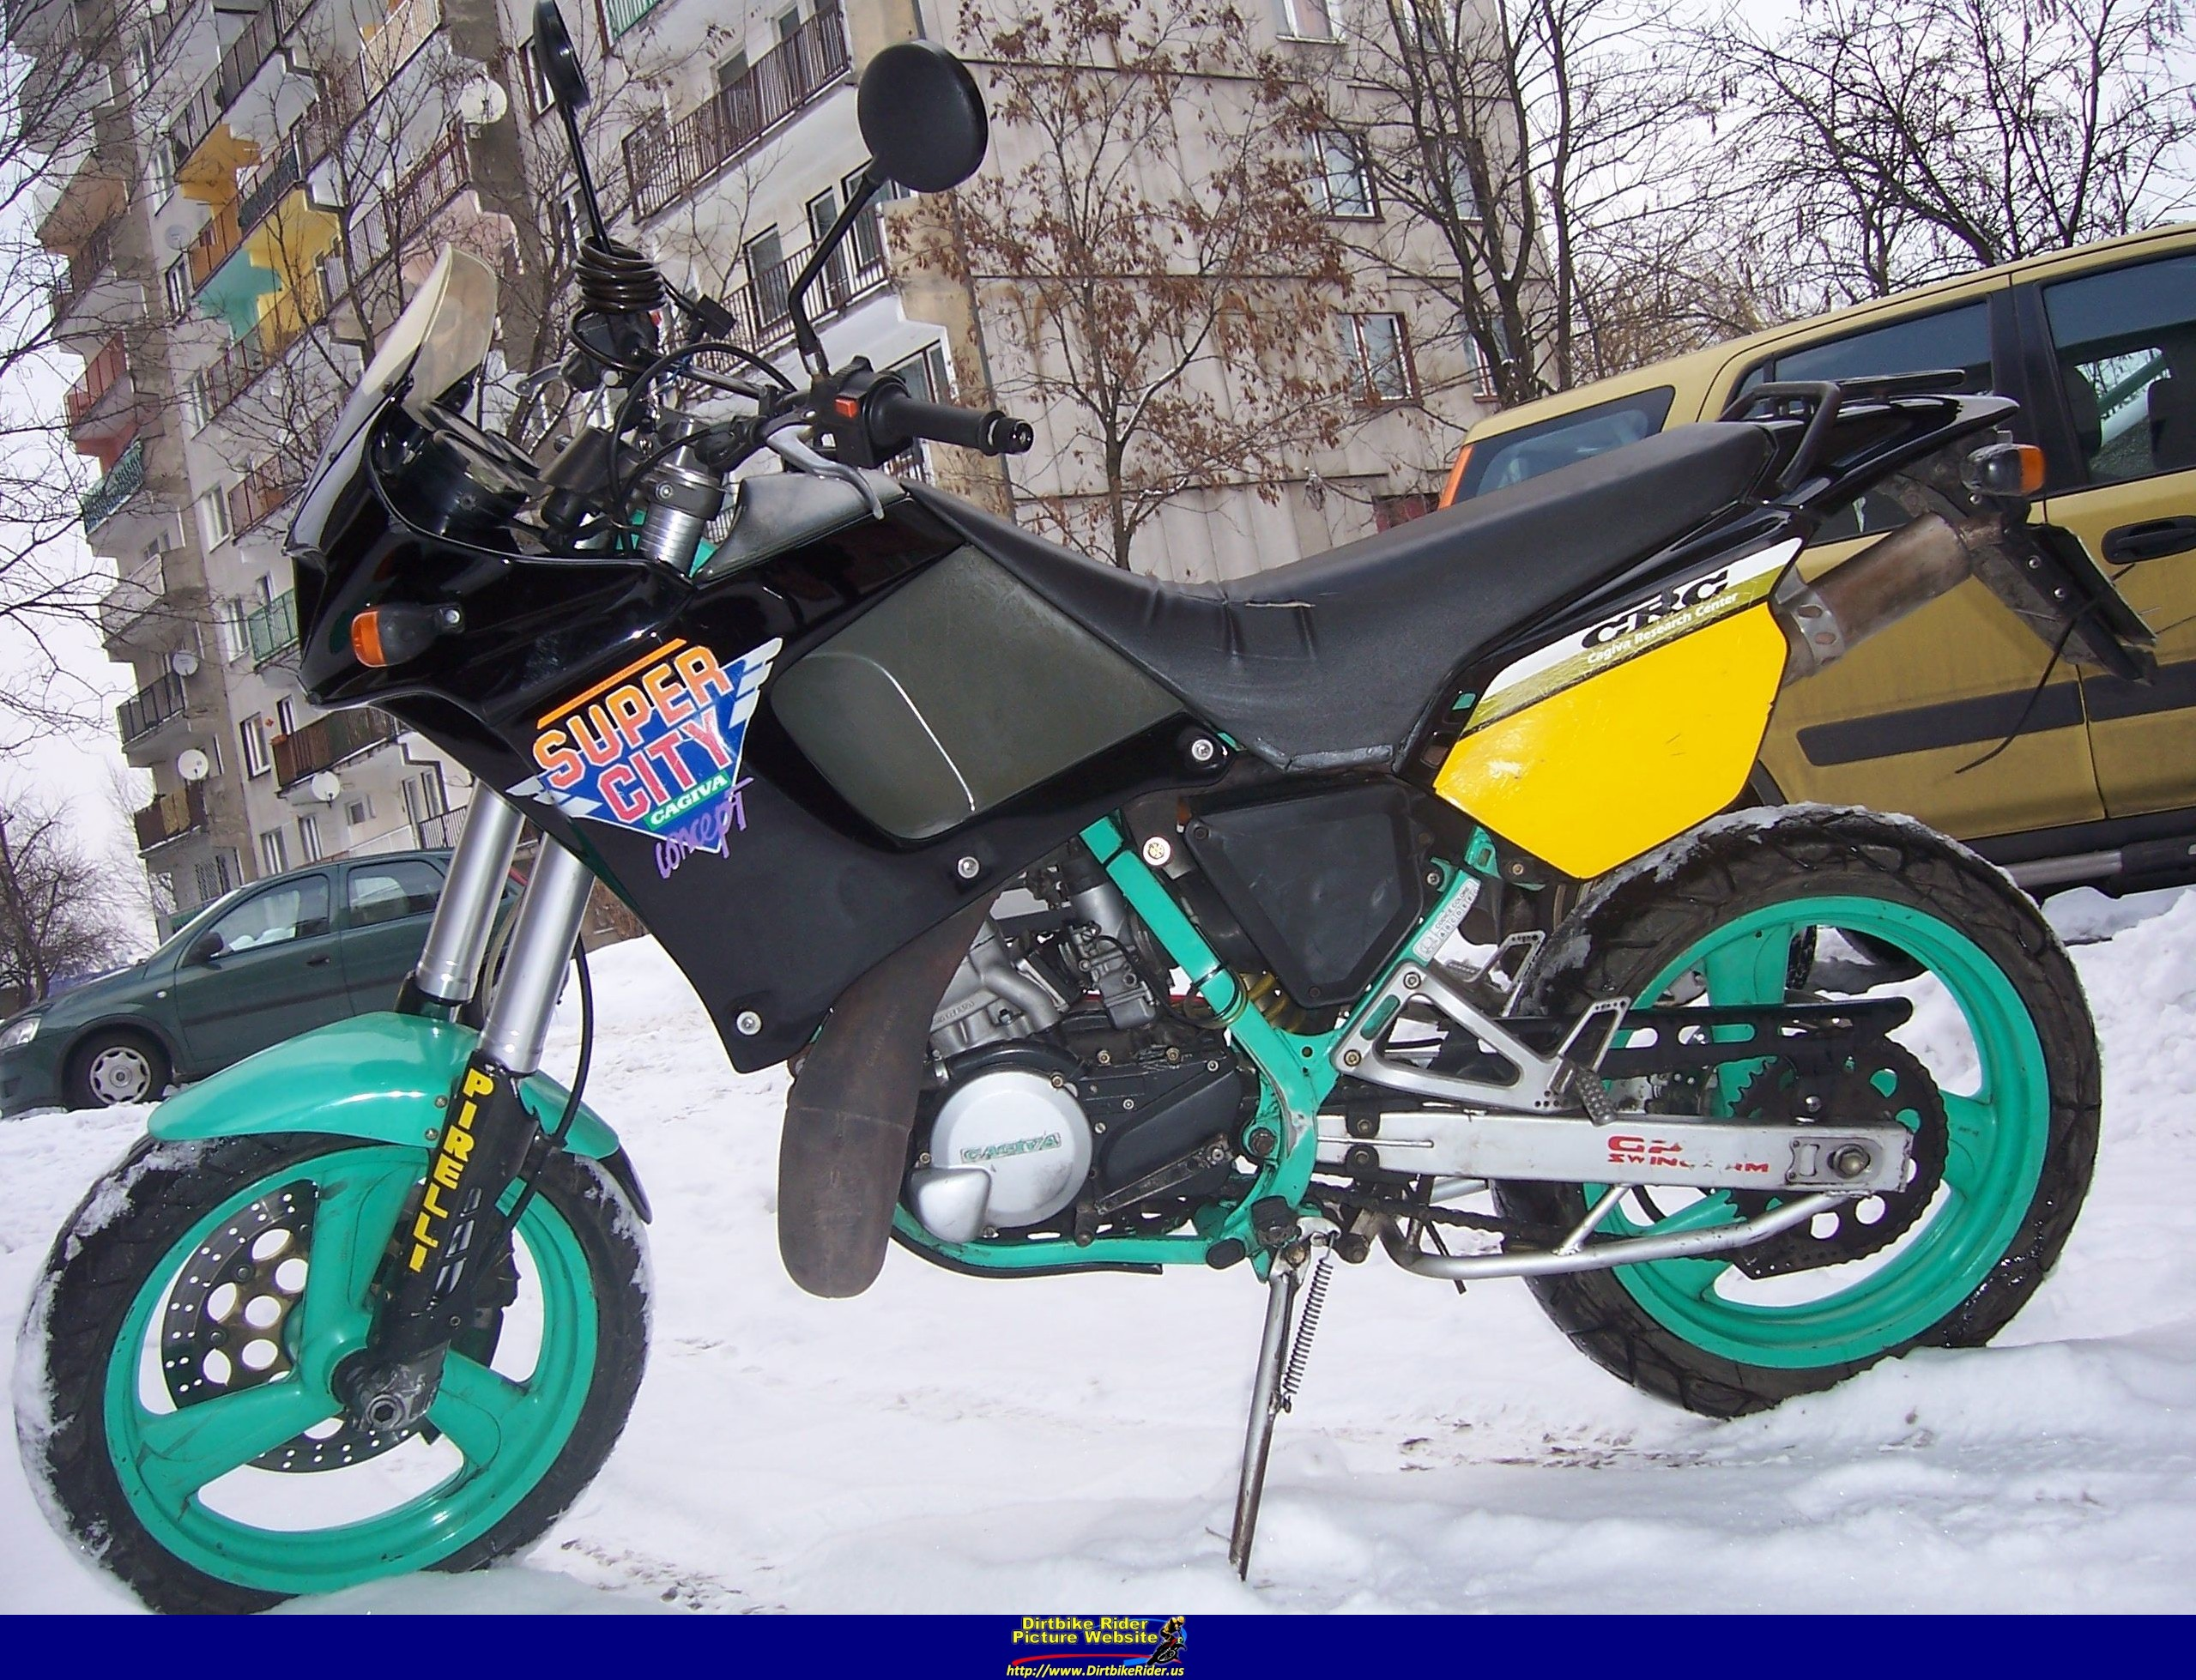 Cagiva Super City 125 1999 images #67366